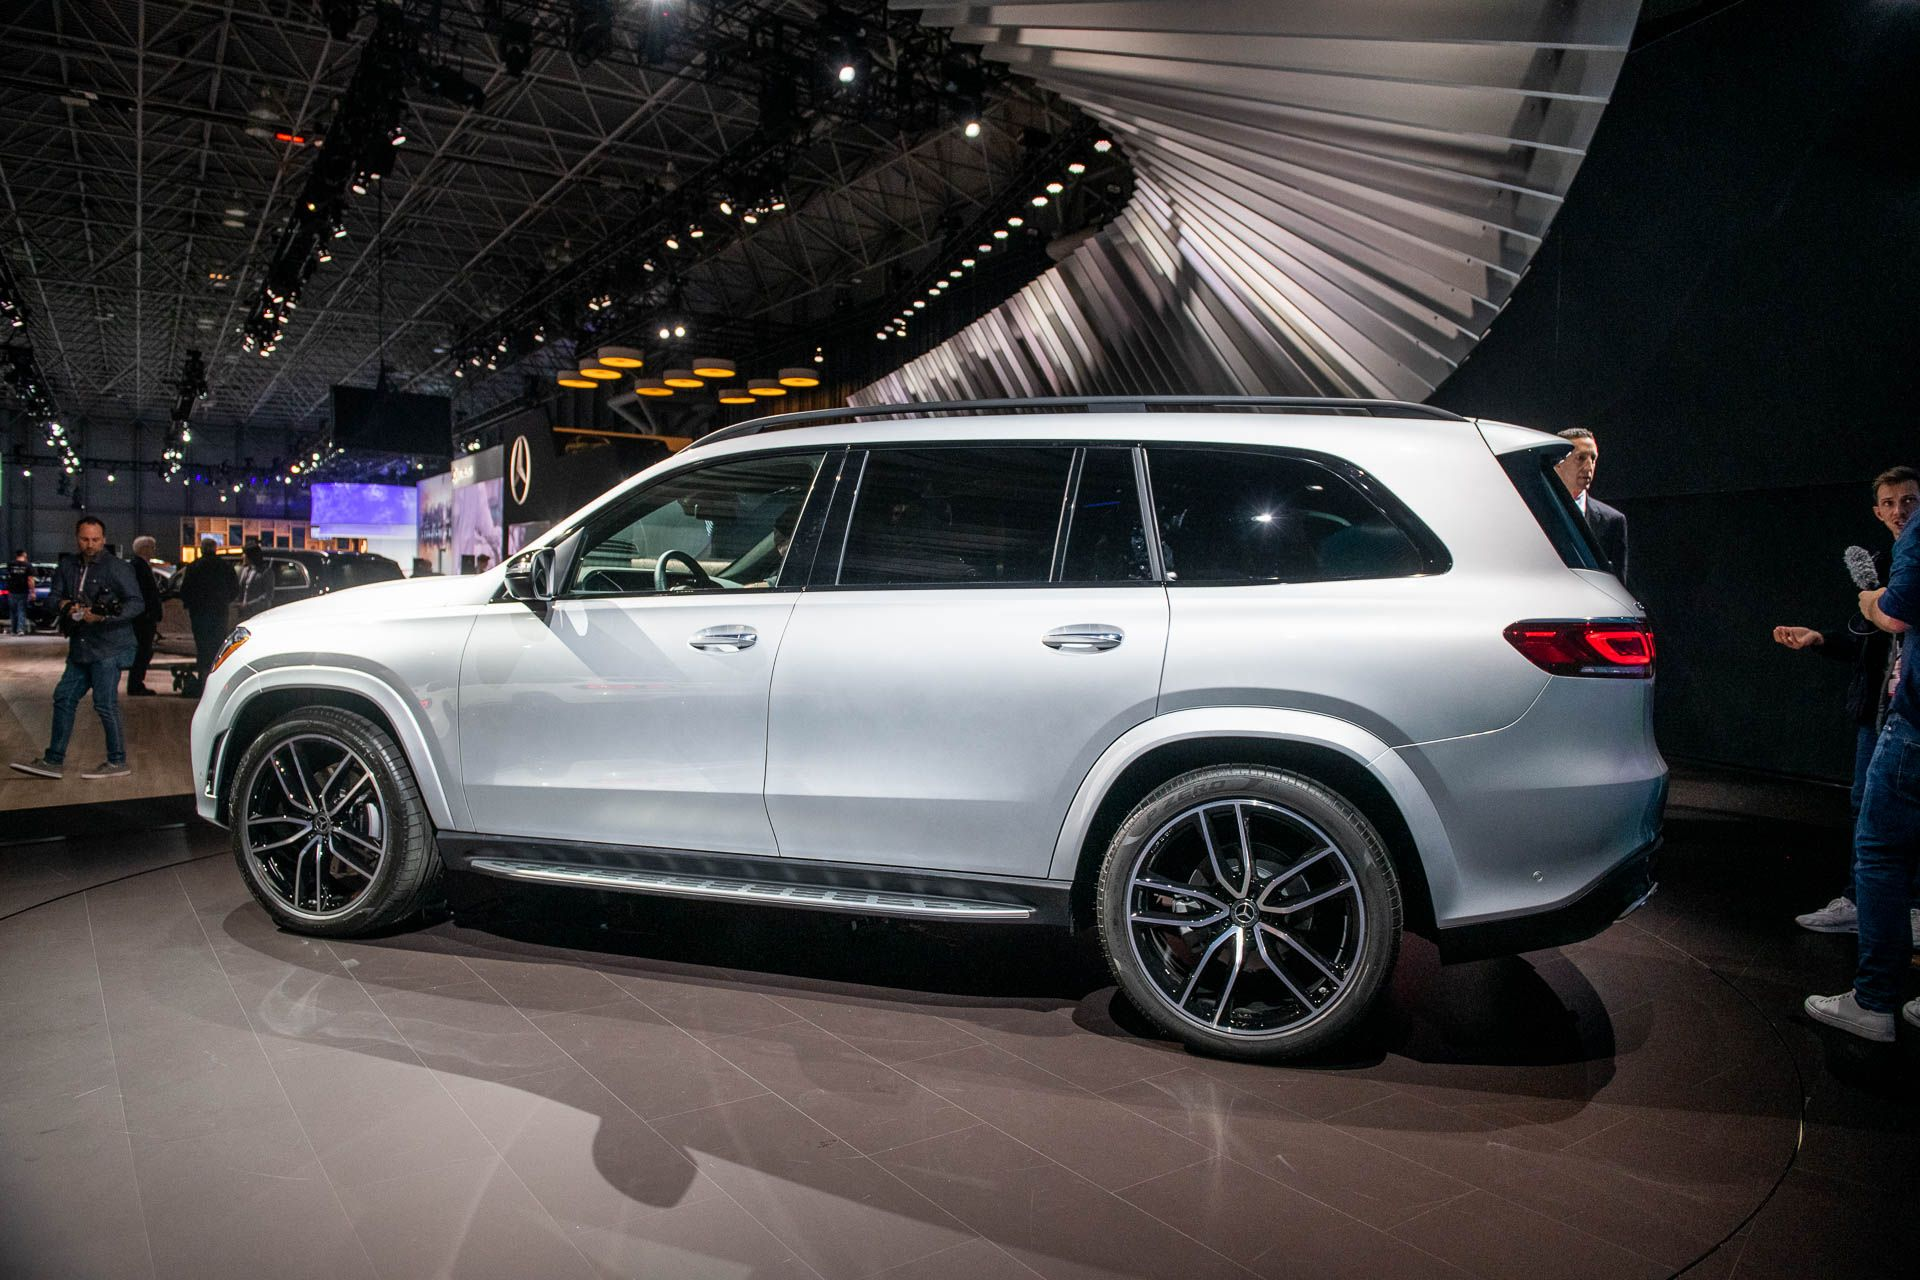 2020 Mercedes Benz Gls Aims To Be The S Class Of Suvs With Images